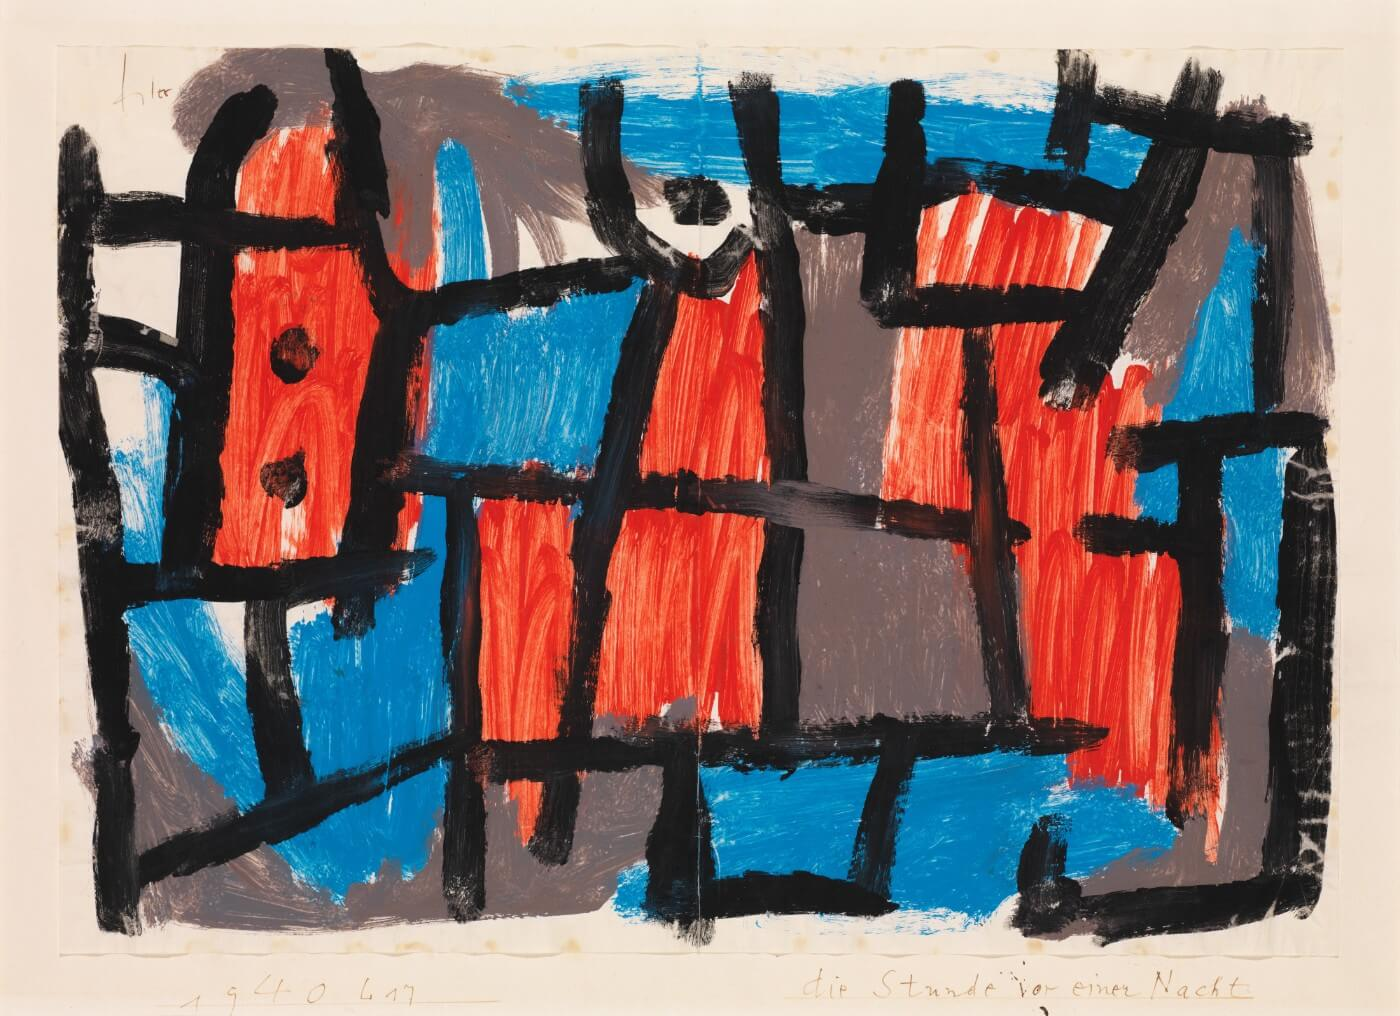 PAUL KLEE Expressionism Surrealism Cubism Poster The Virtue Wagon 1922